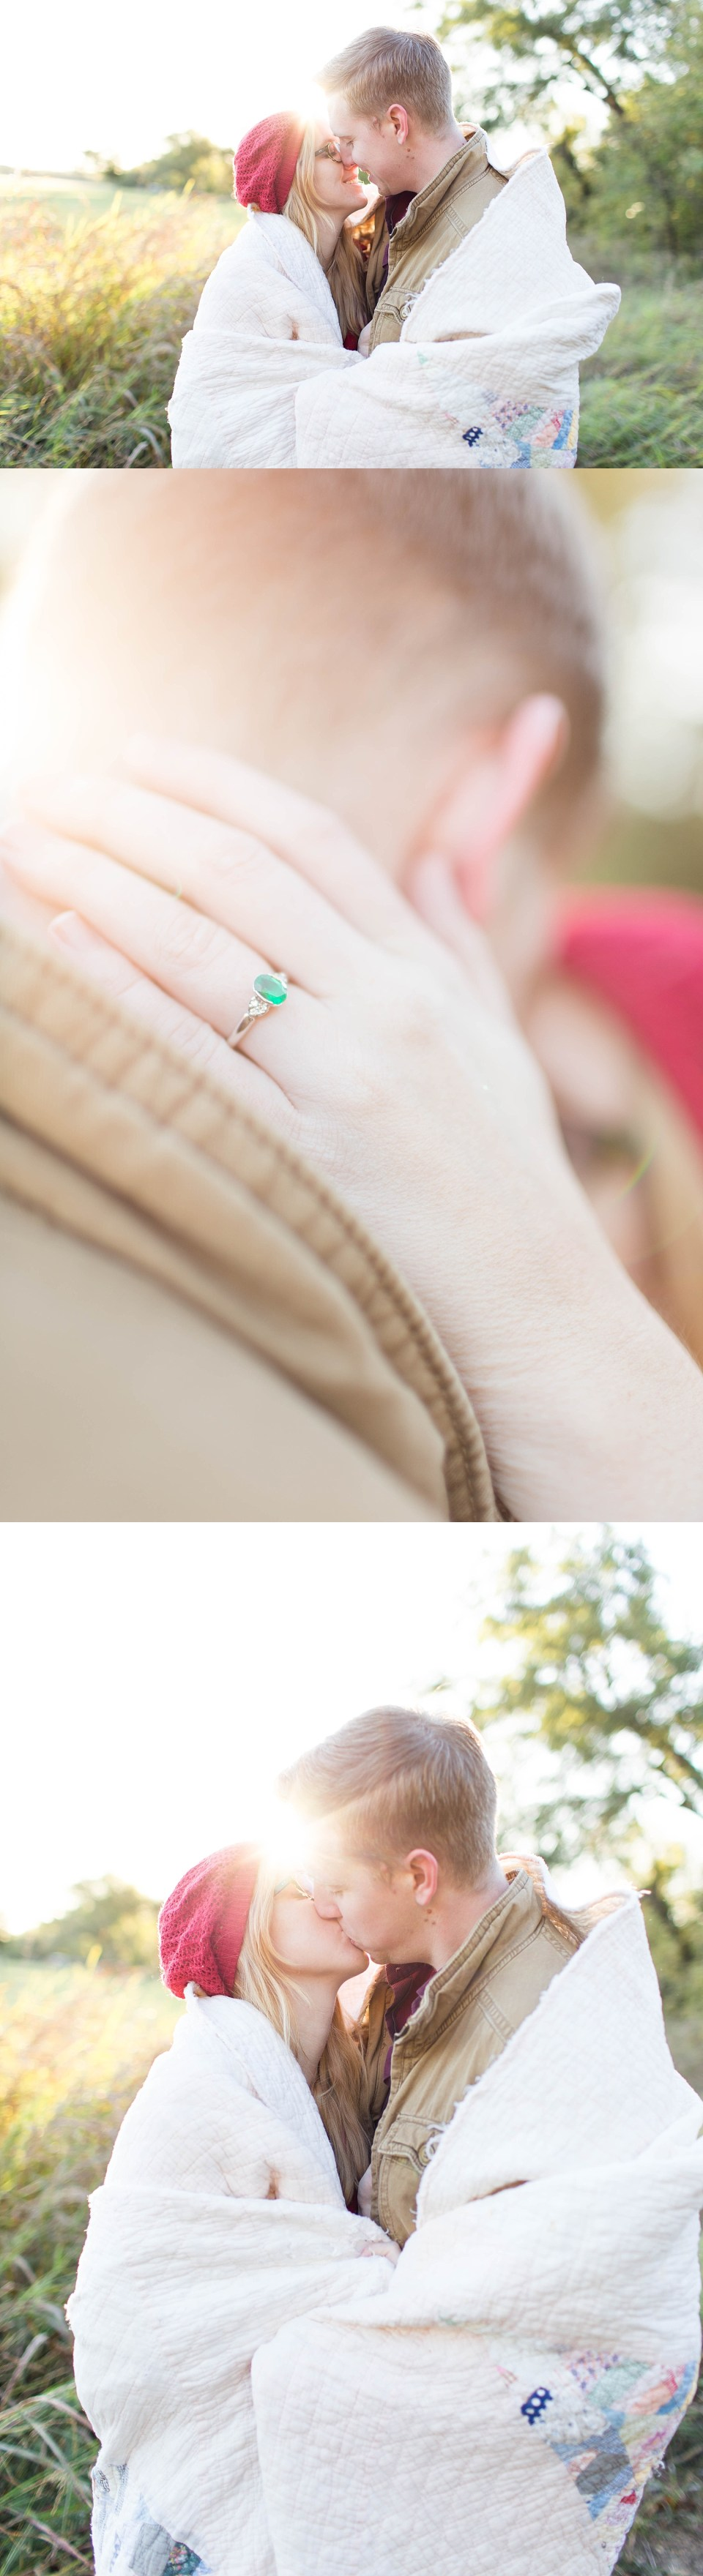 Engagements | Becca Sue Photography - beccasuephotography.com